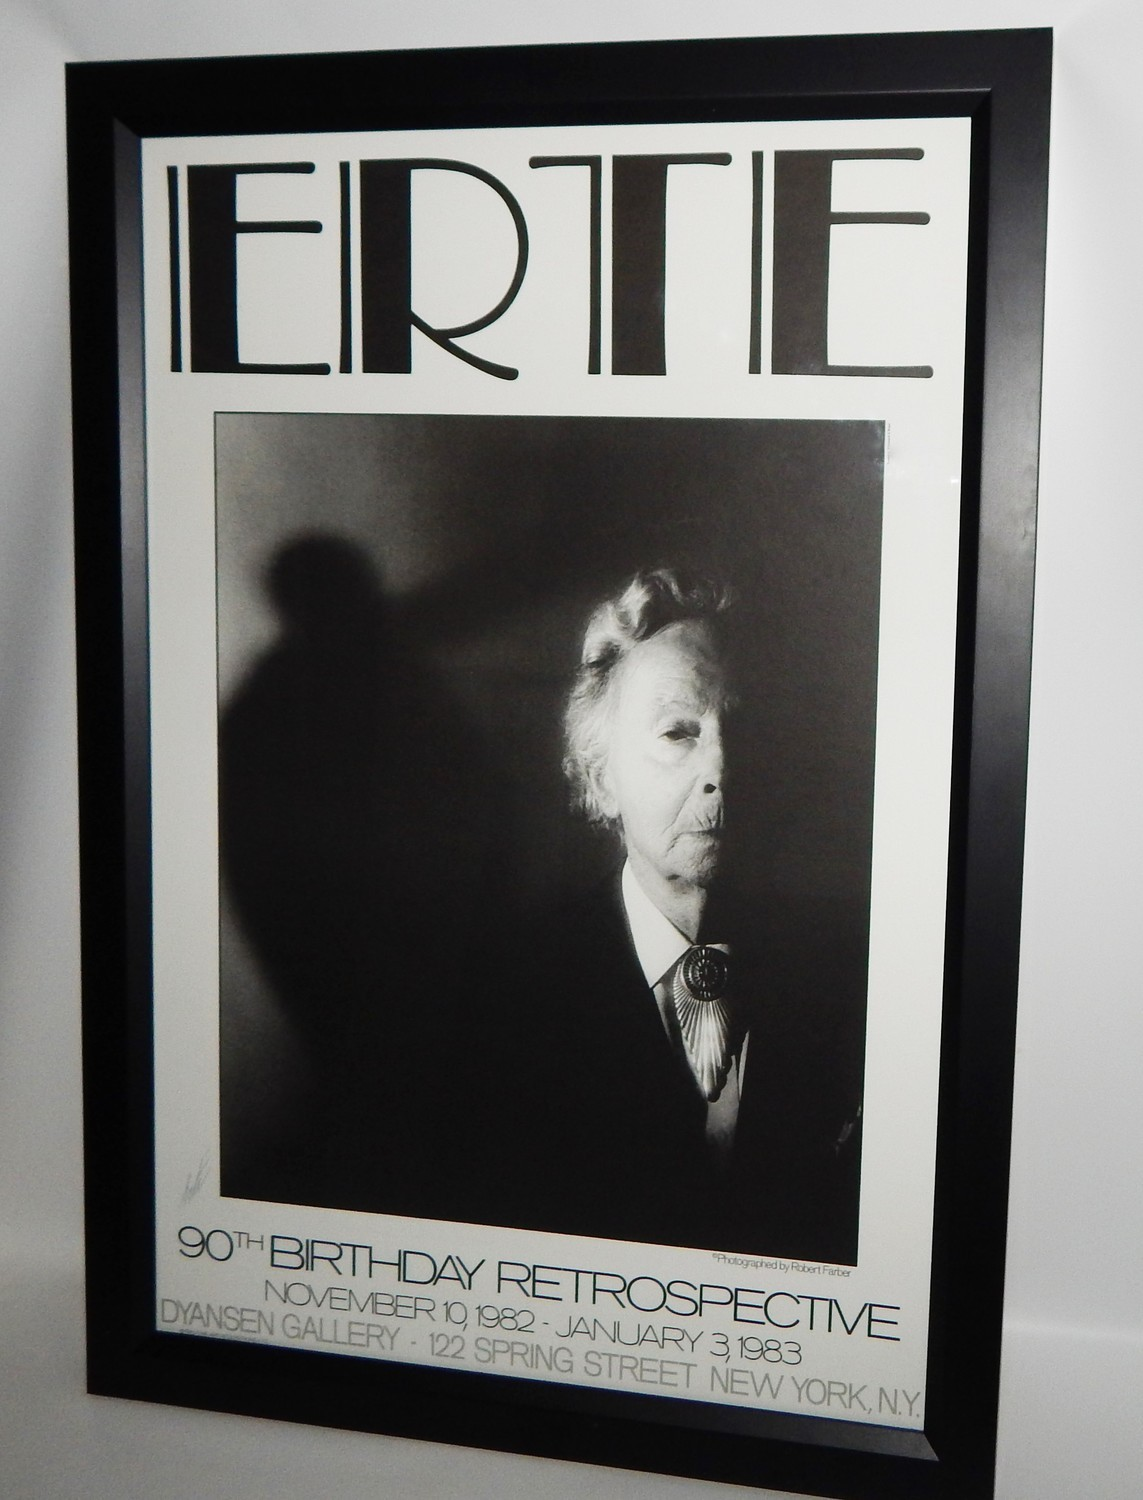 1982 ERTE (SIGNED) 90th Birthday Party 36x24 Framed Poster by Robert Farber